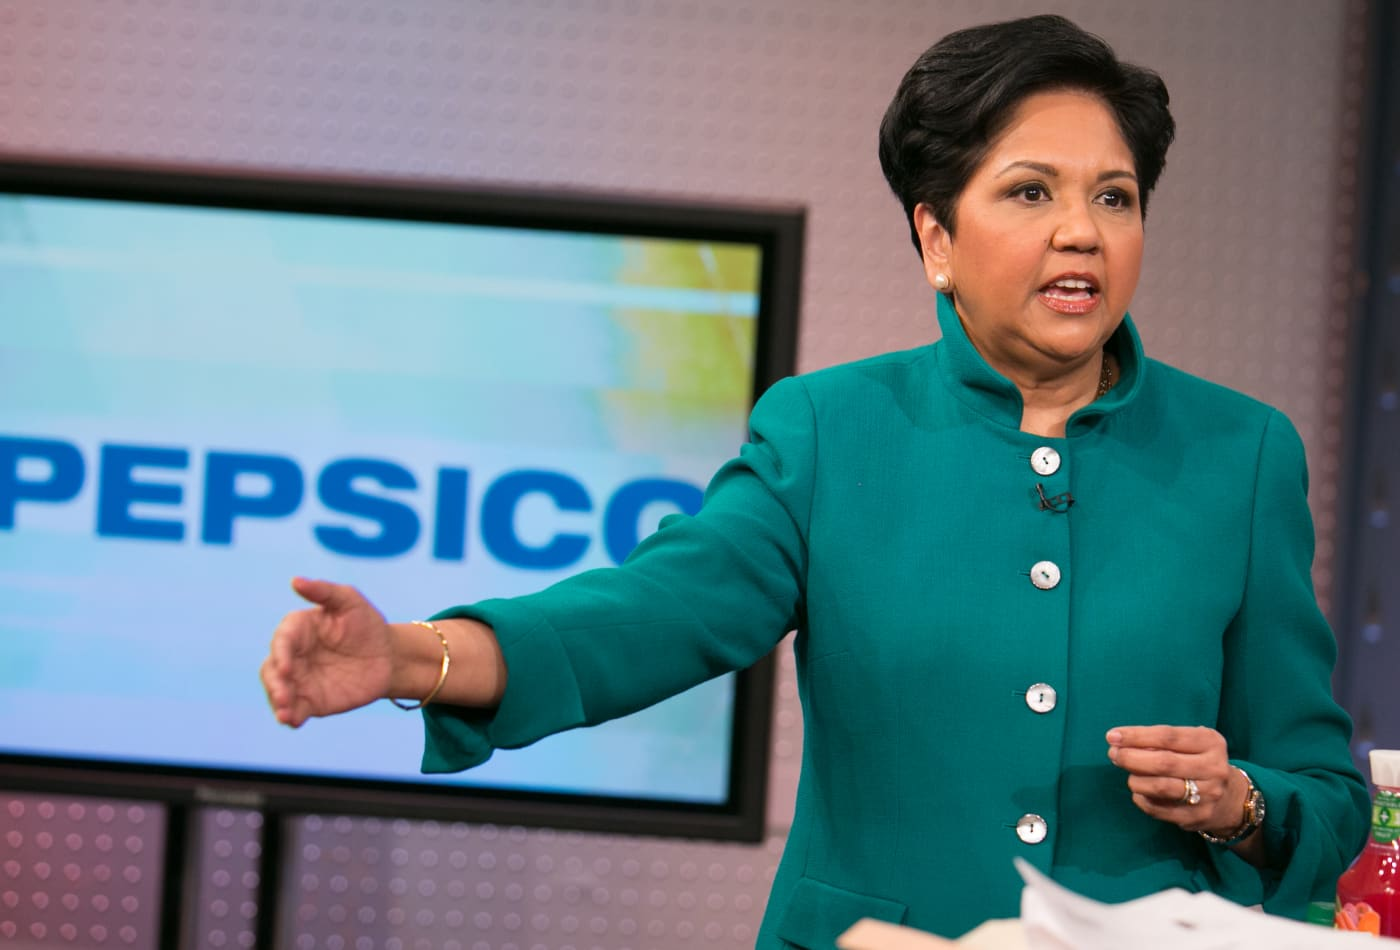 PepsiCo CEO Indra Nooyi: 5 habits that drove her success